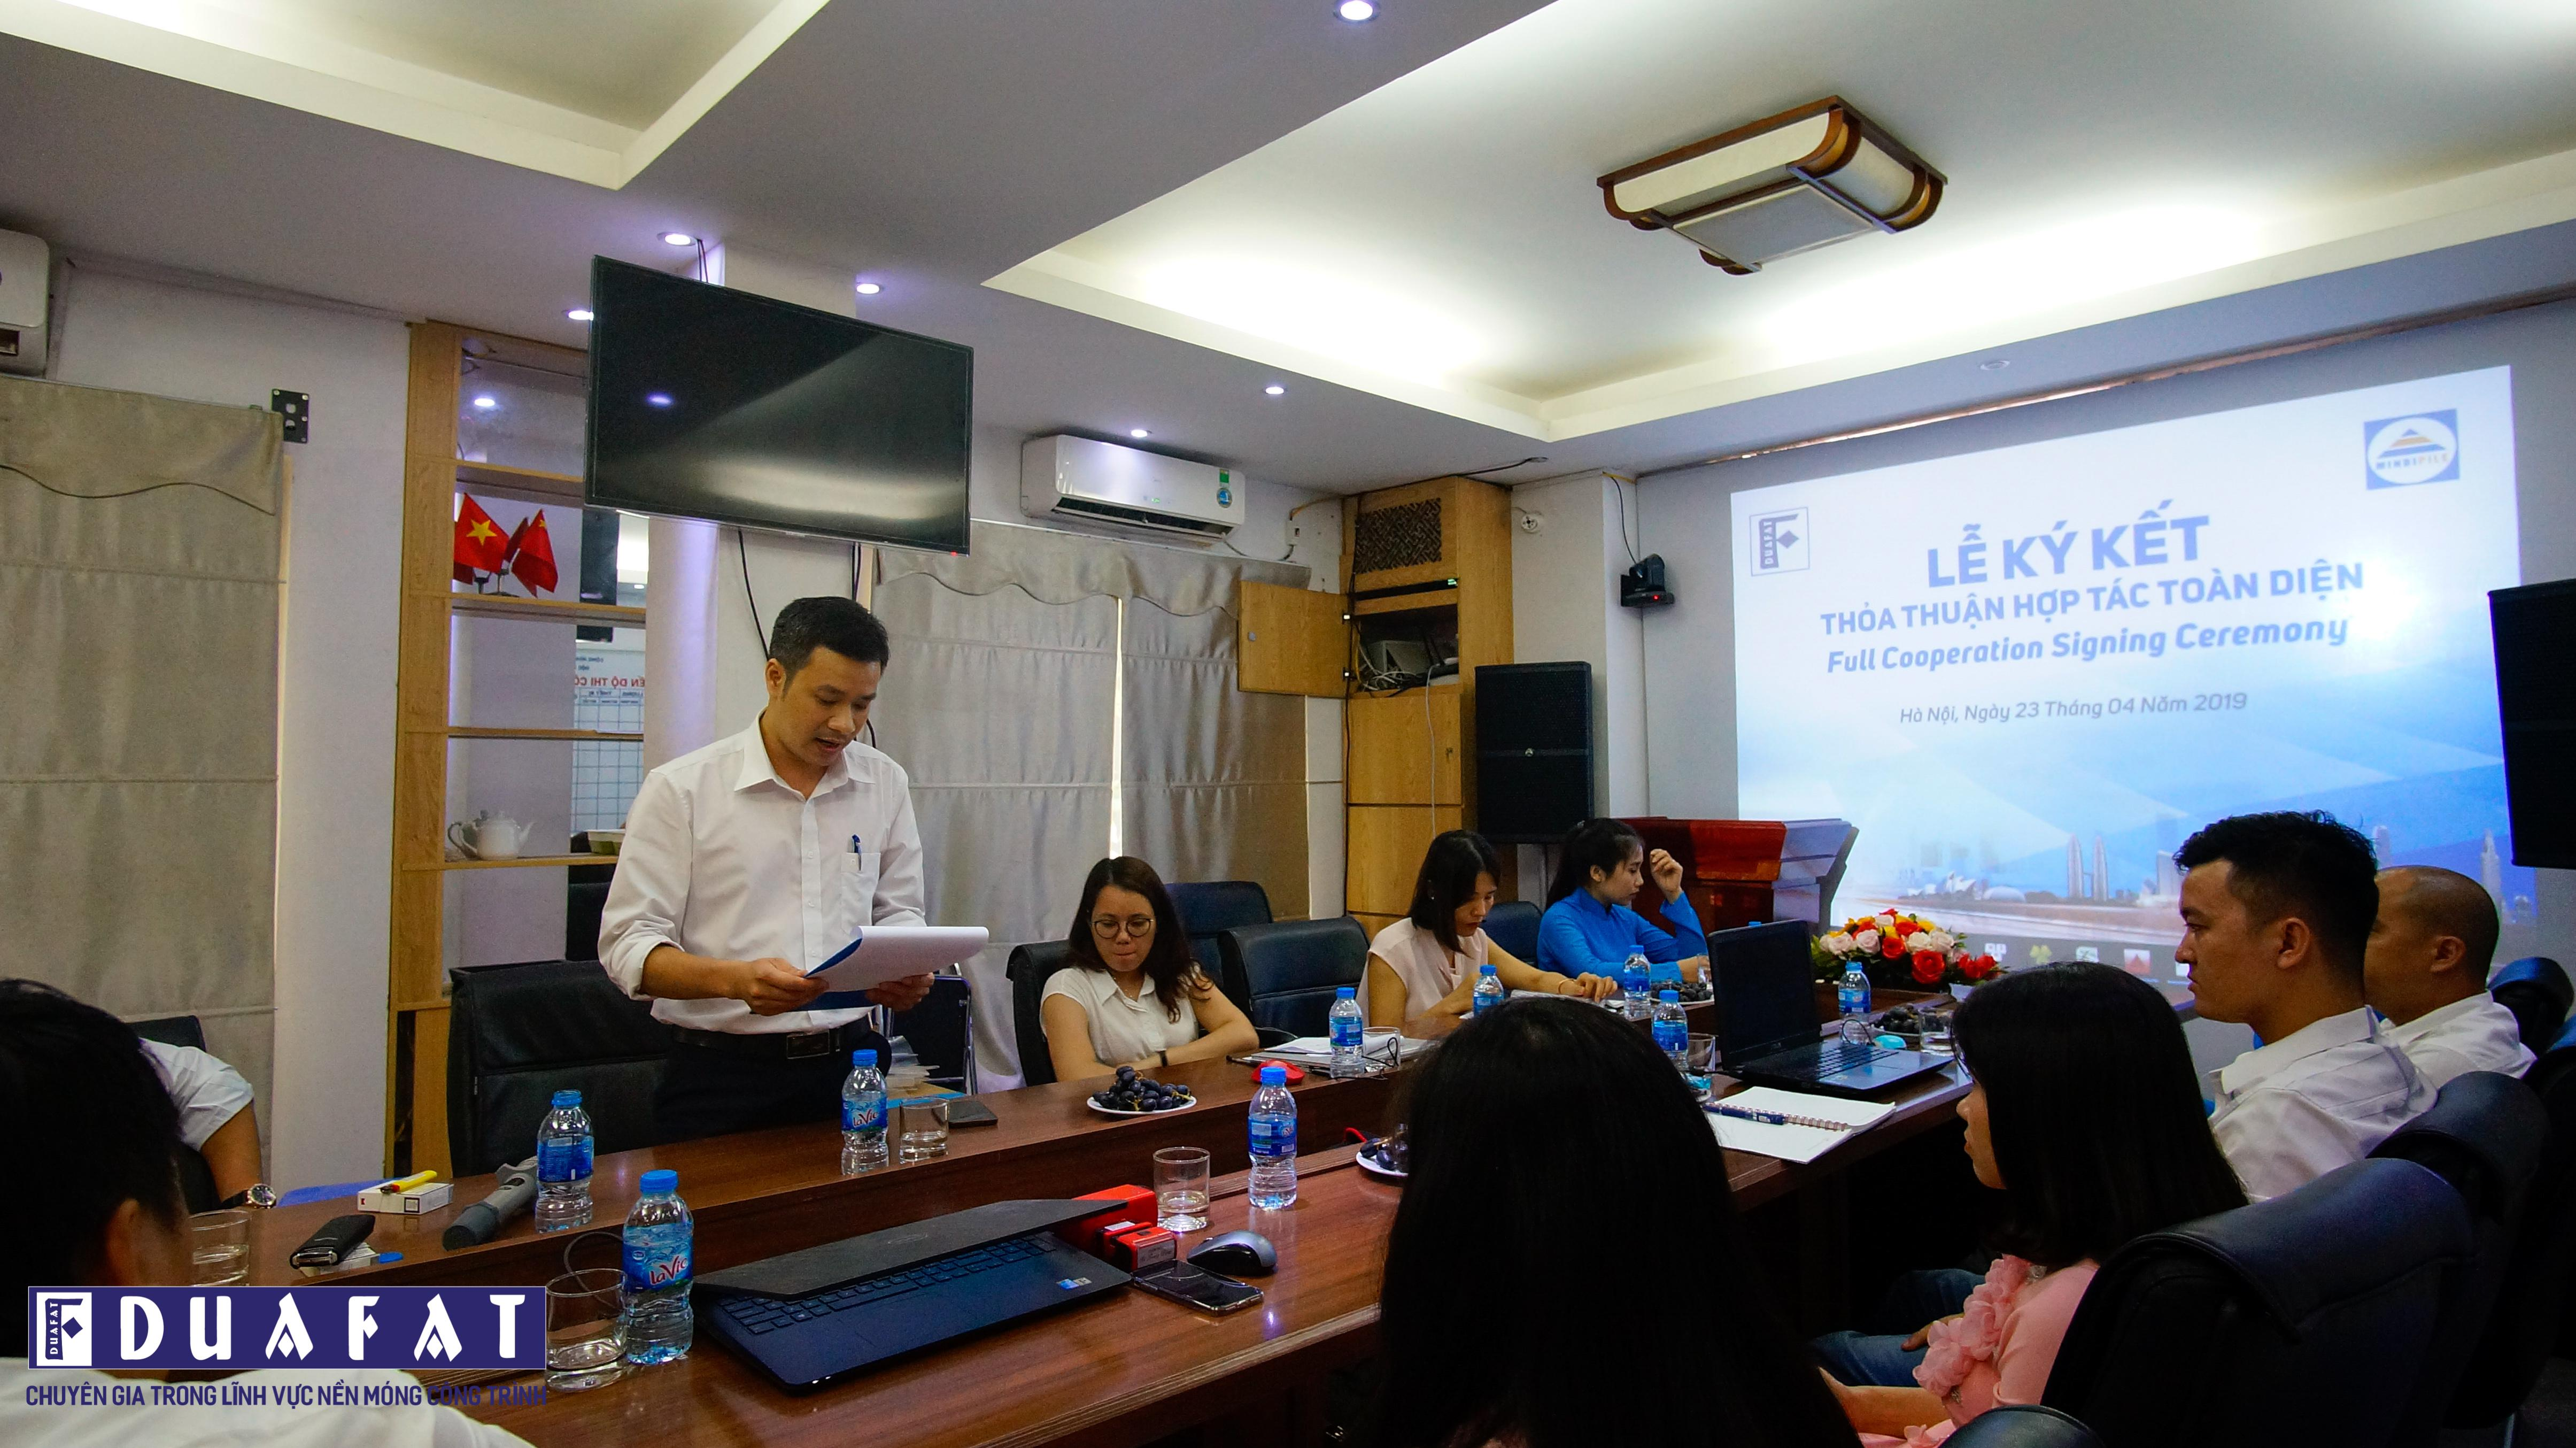 Mr. Cao Ngoc Thu – Head of Economic Division Dua Fat Foundation JSC read the full of cooperation